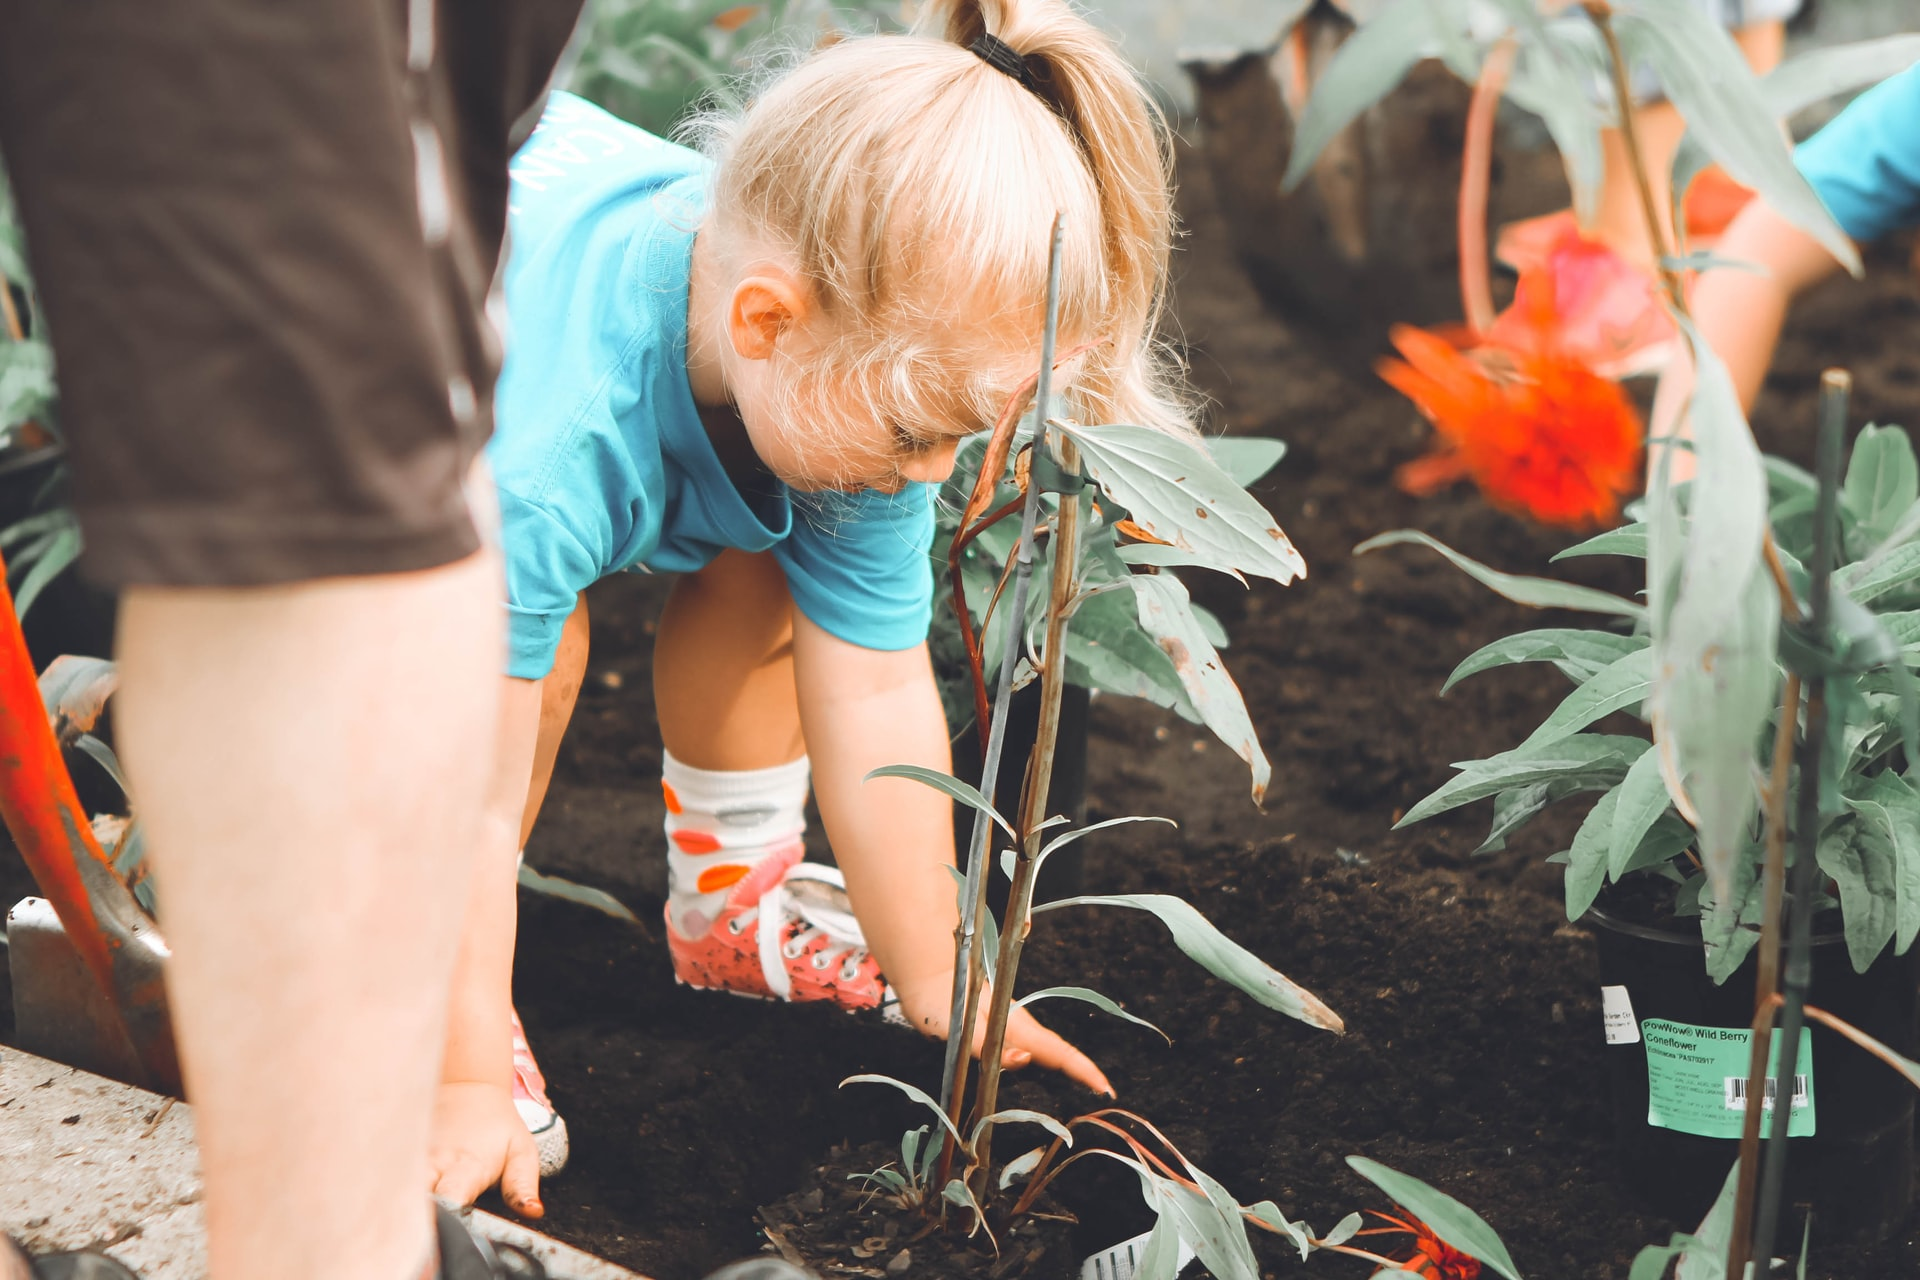 This image shows a young girl helping with the gardening.